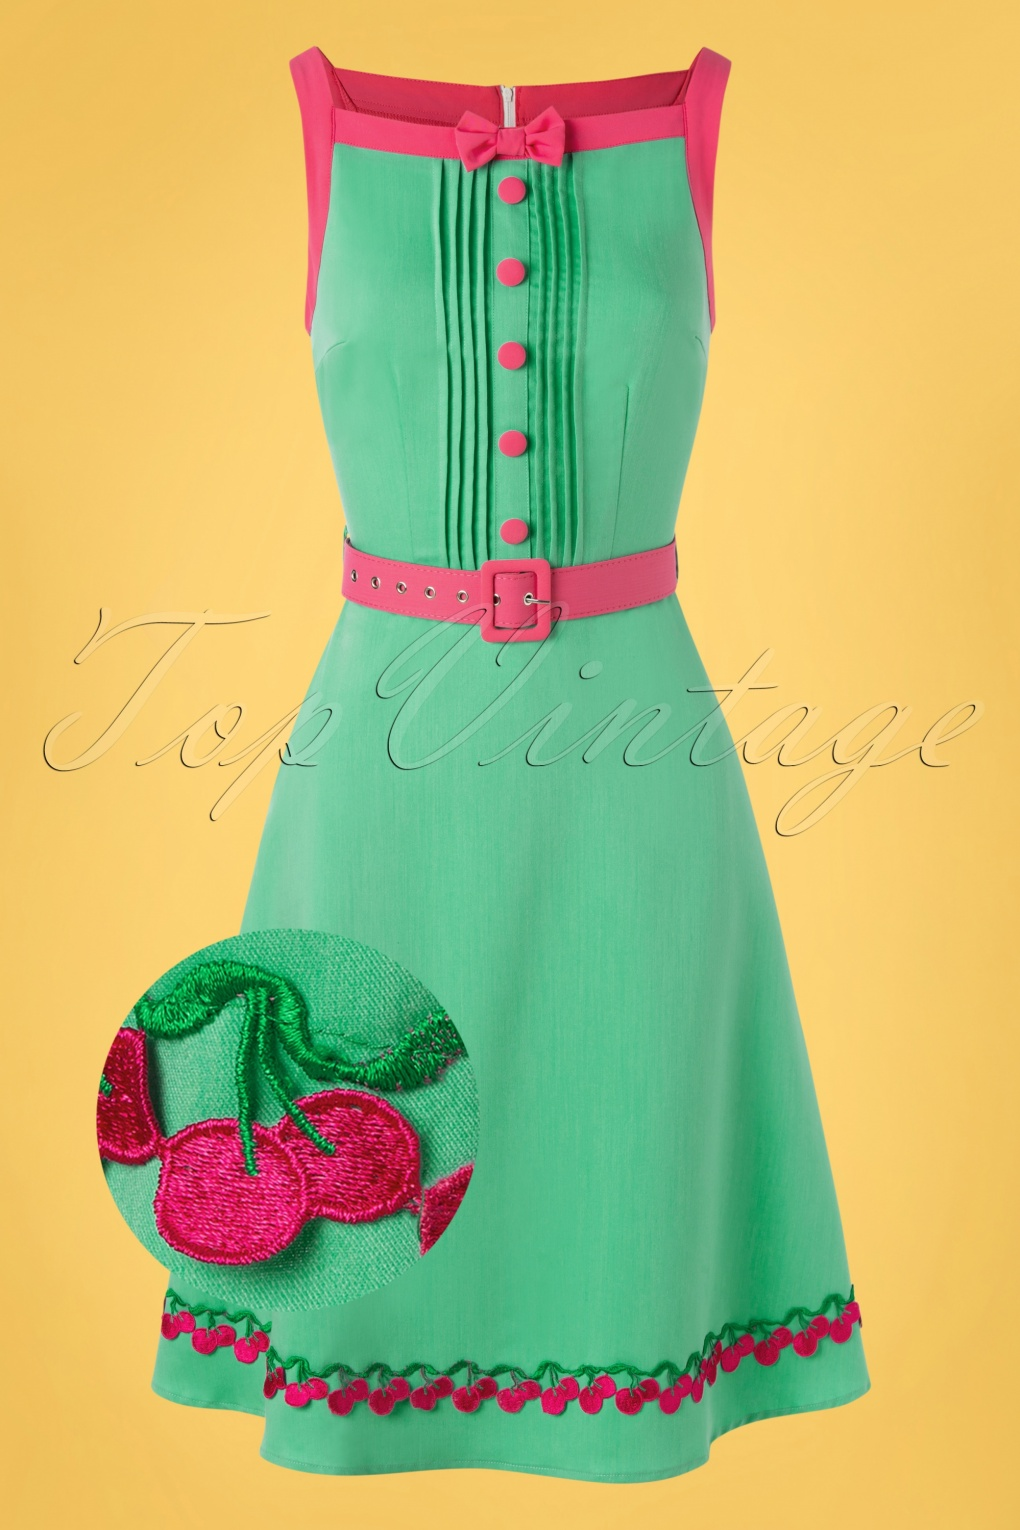 1960s Style Dresses, Clothing, Shoes UK 60s Nelly Dress in Mint and Fuchsia £54.30 AT vintagedancer.com